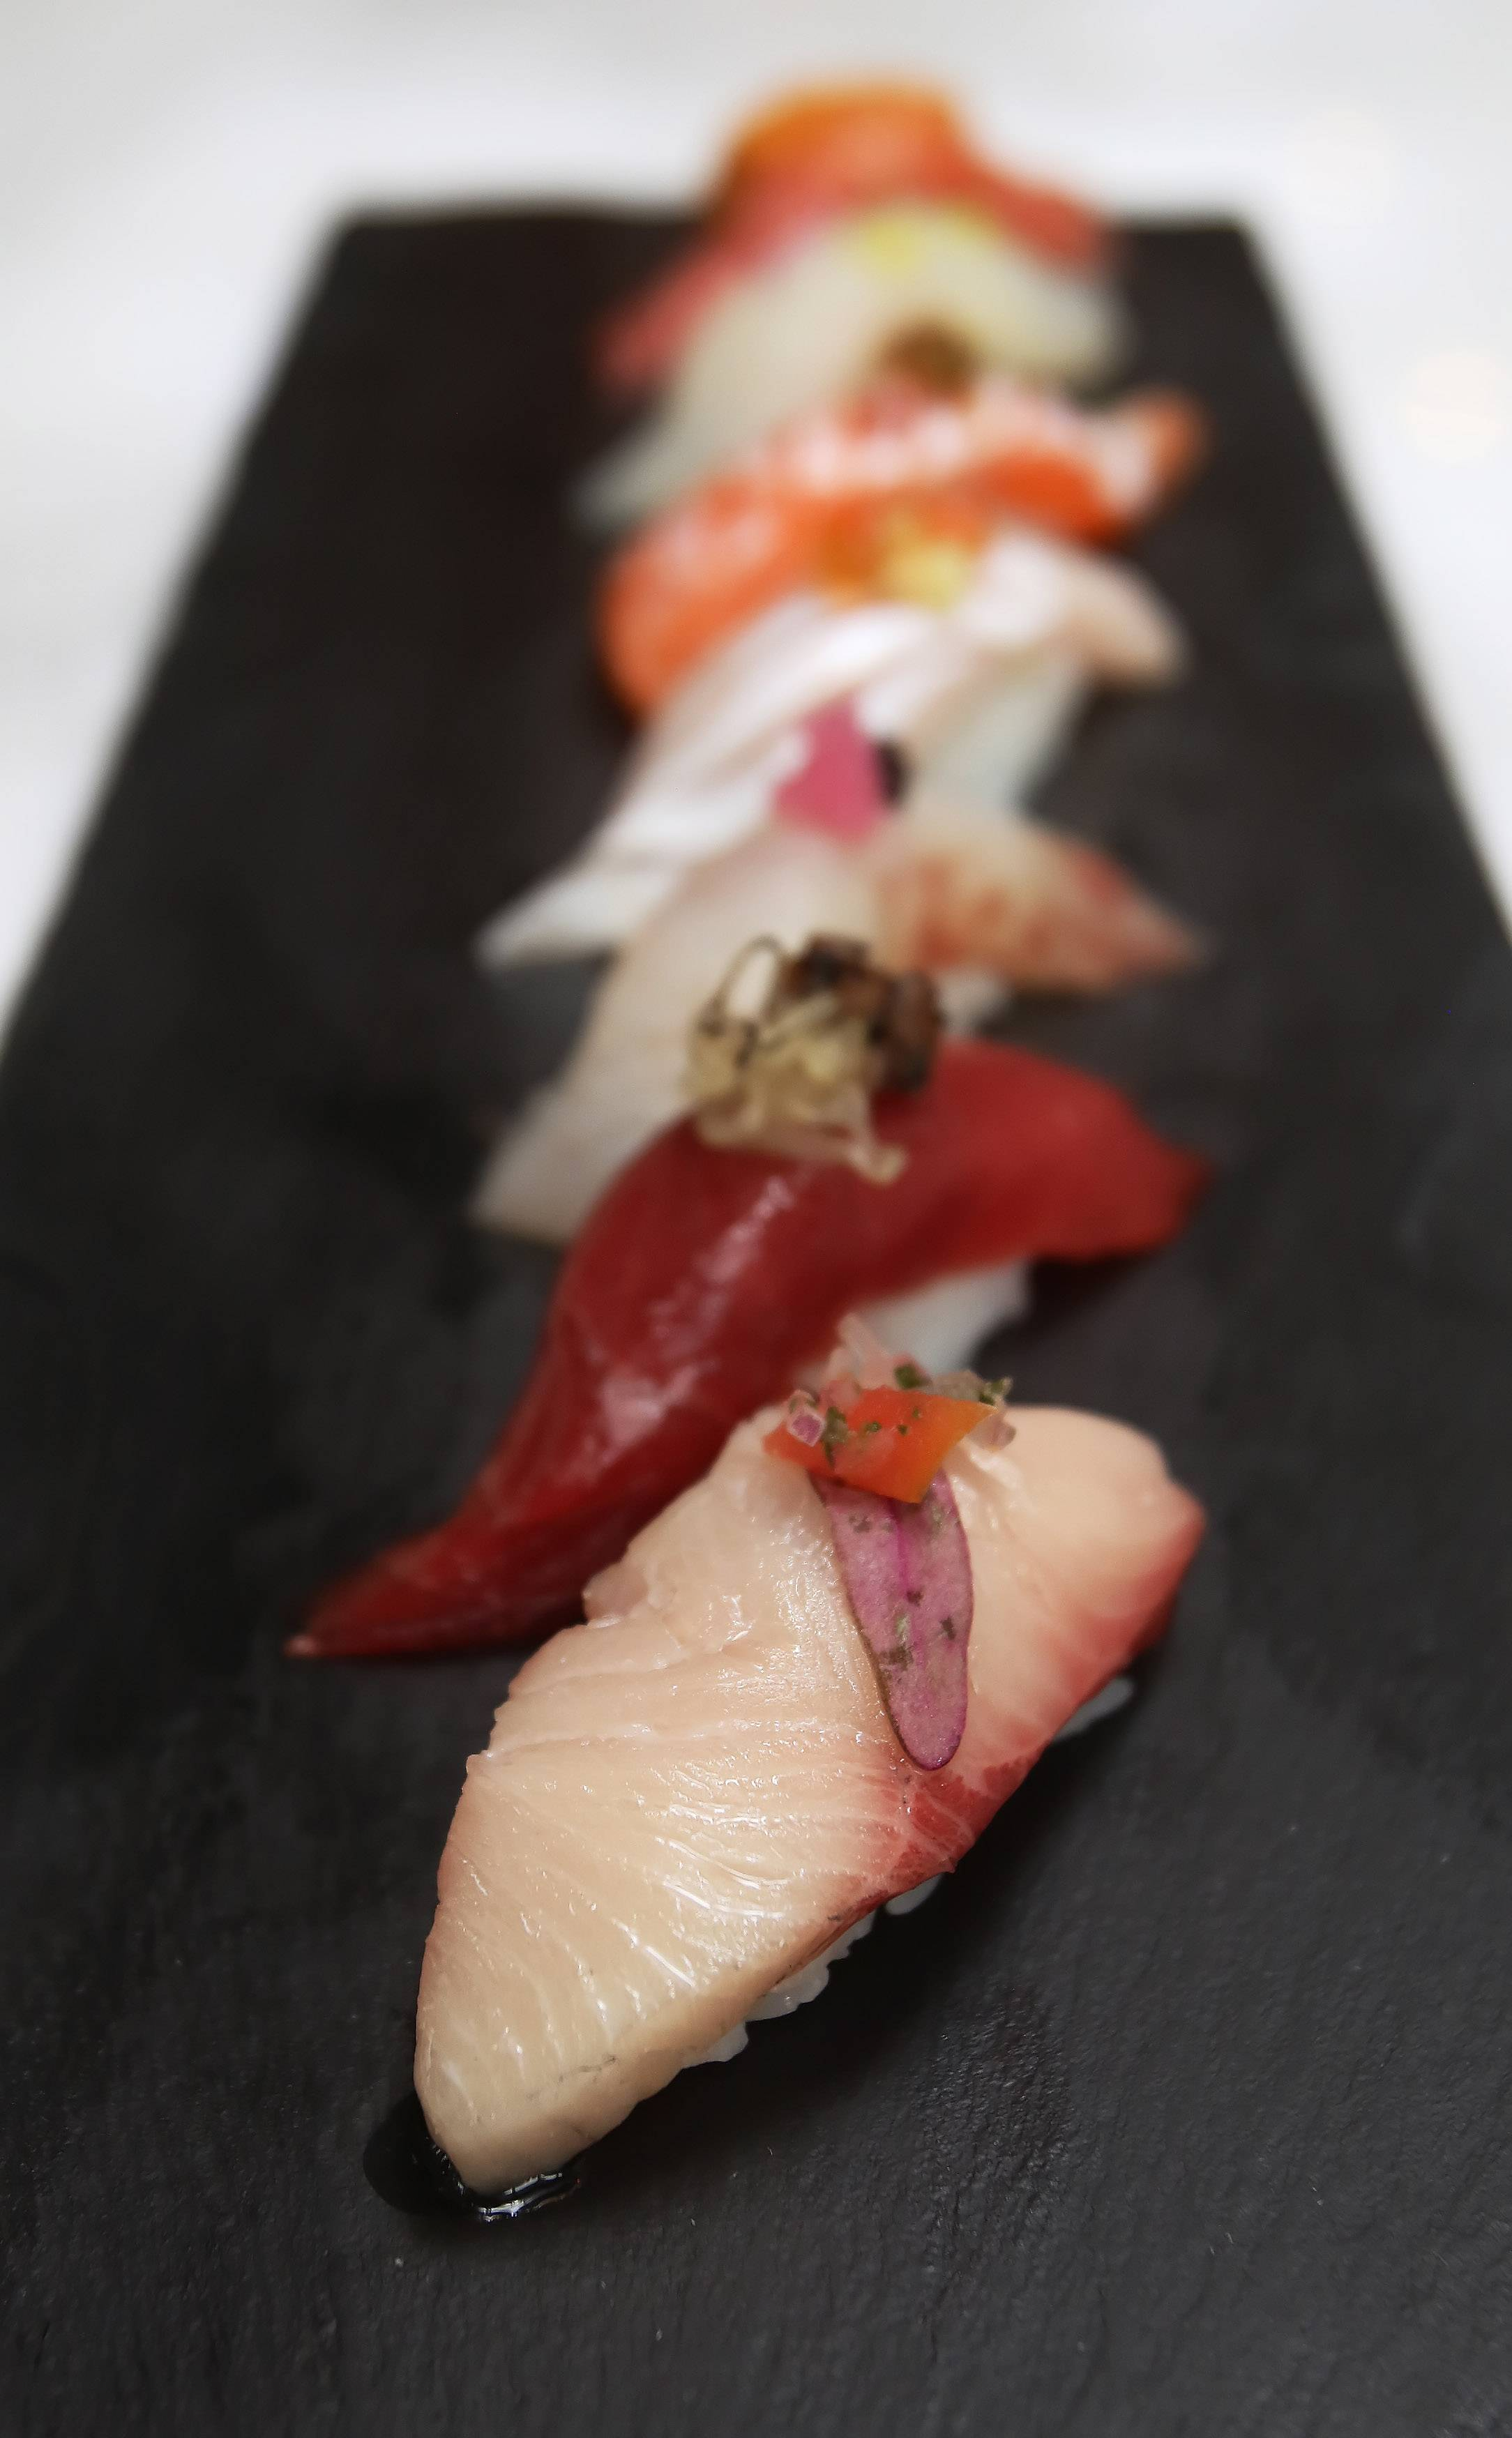 The chef's signature nigiri includes six artfully crafted pieces at Blufish Sushi in Vernon Hills.